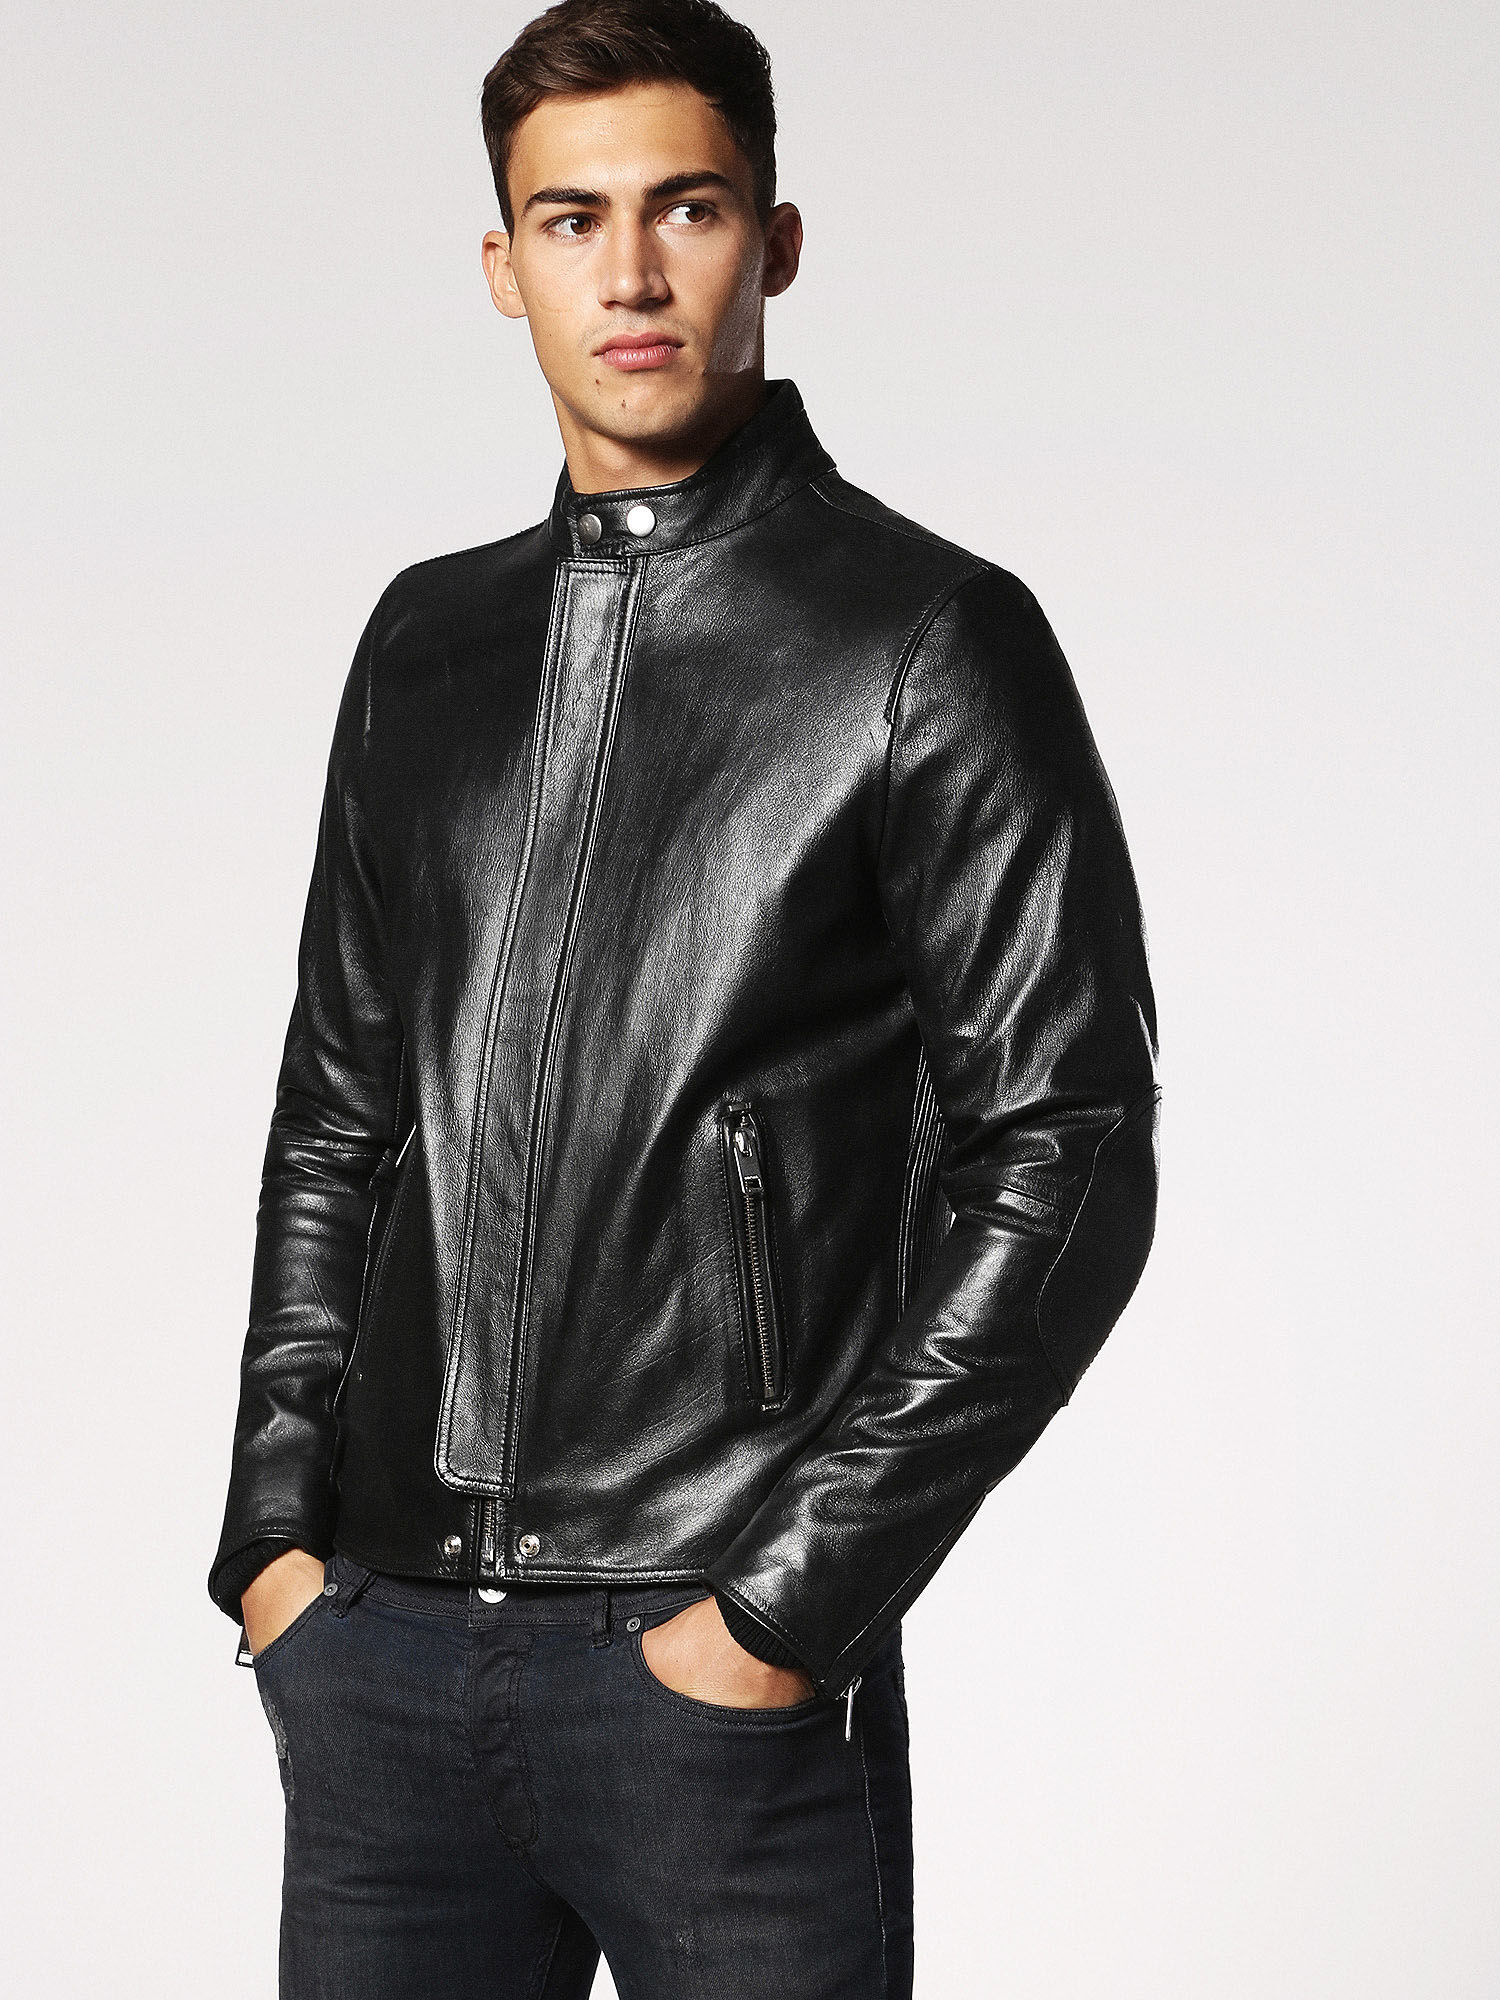 1 Color. L-RUSH Leather jackets